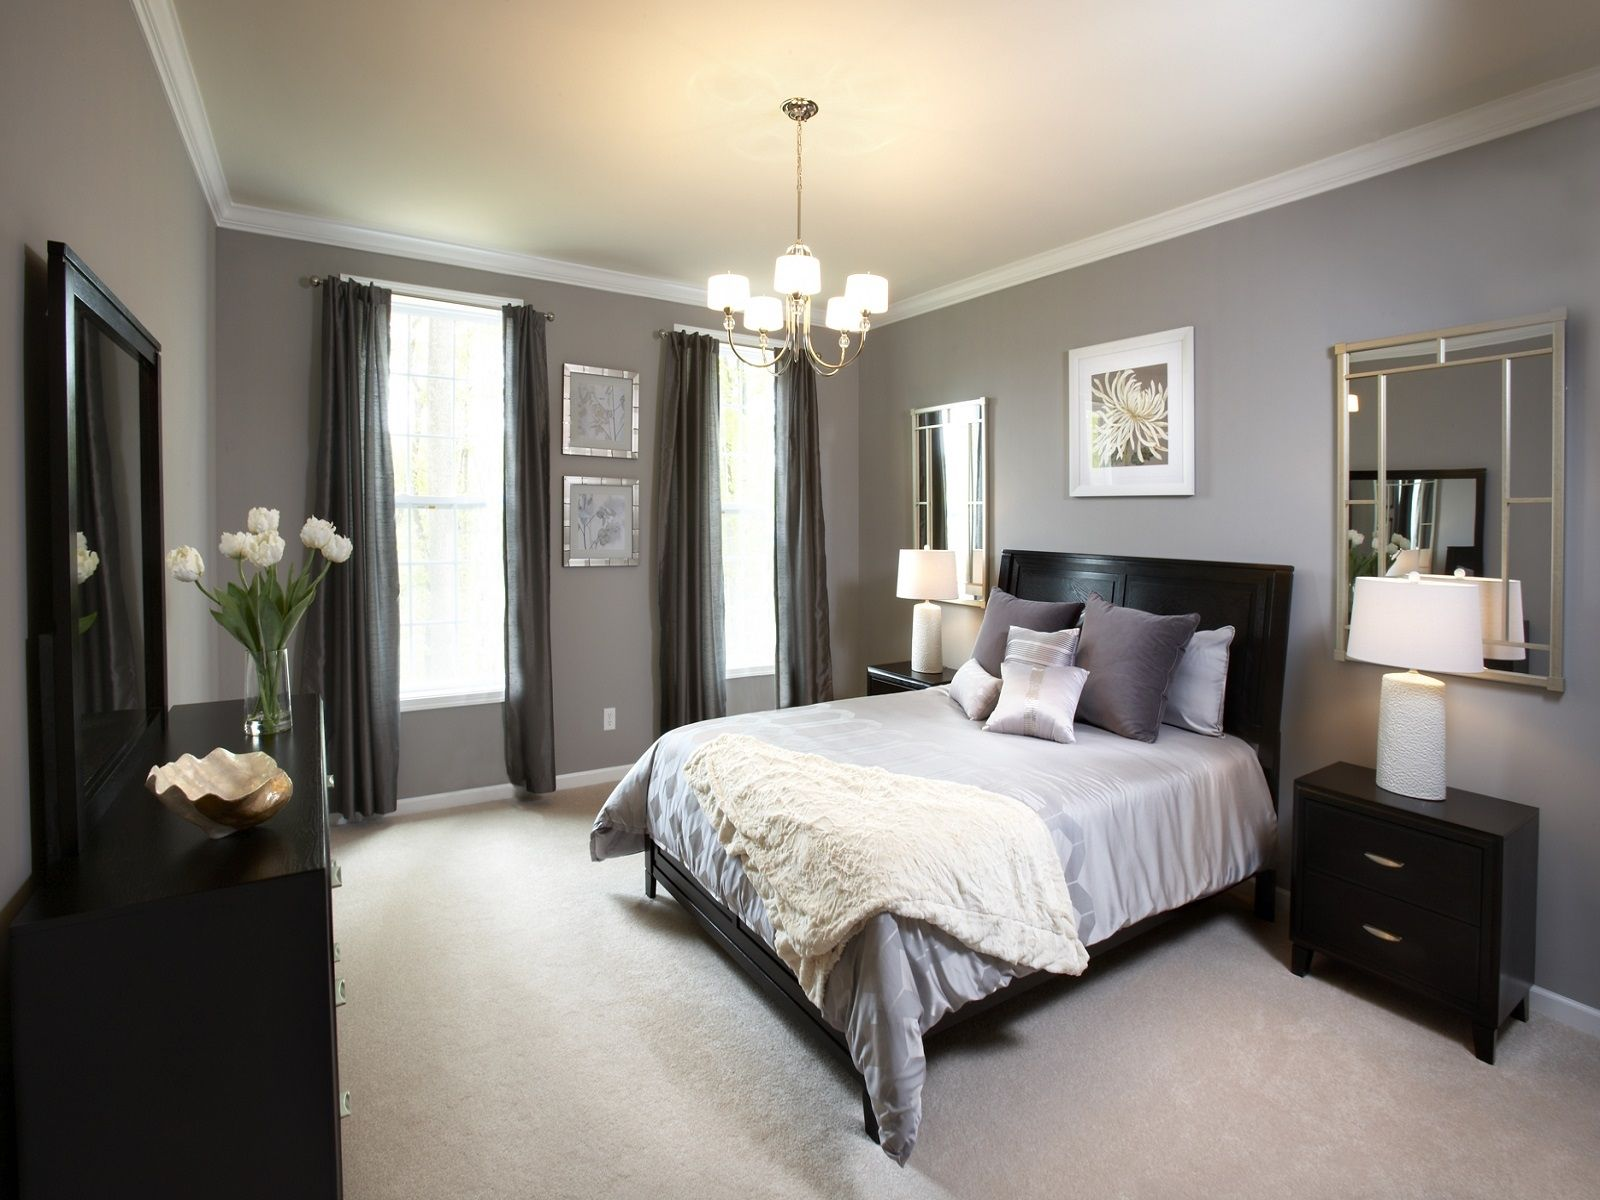 45 beautiful paint color ideas for master bedroom - Master Bedroom Decor